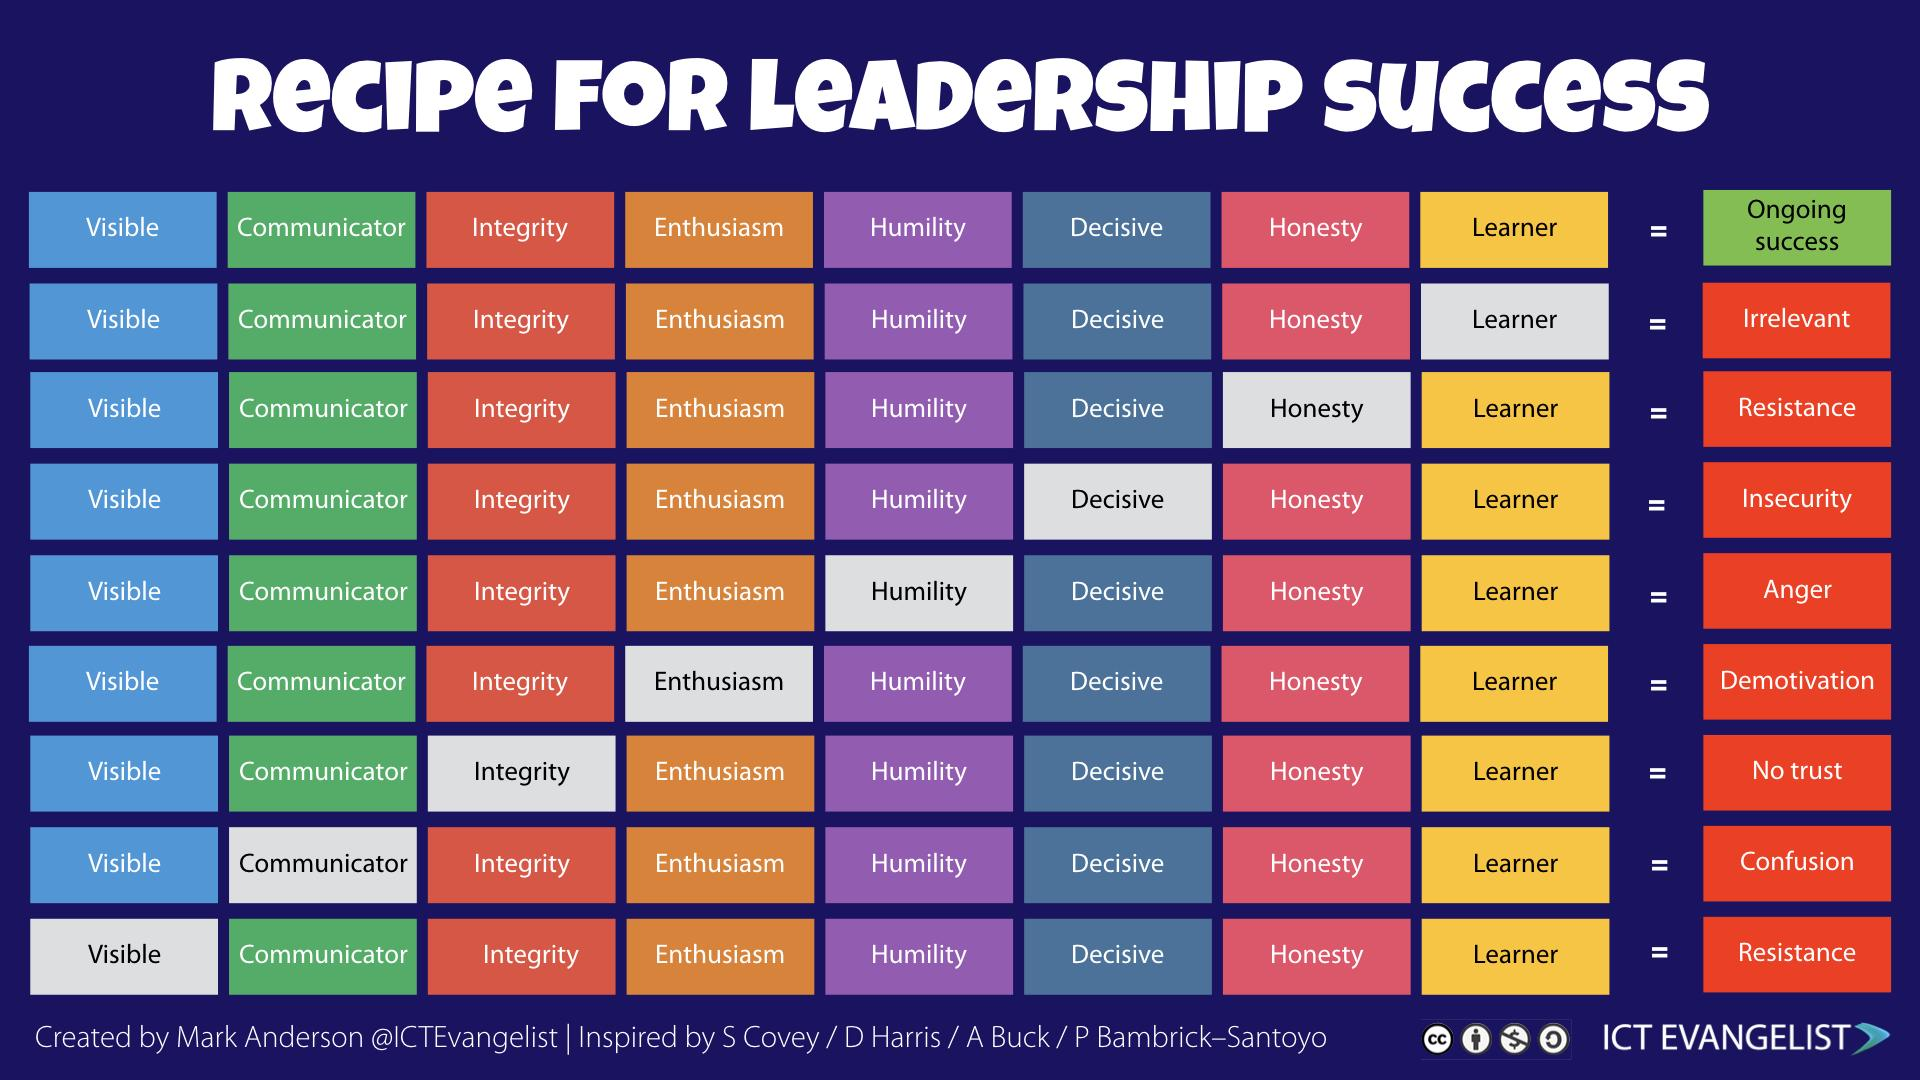 Have been re-reading some key leadership books and thought it'd be handy to have a reckoner highlighting key points to help keep me on track, so I made this. Hope you find it useful too. #SLTchat #edutwitter #leadership #edchat #UKEdChat  cc @bravehead @Andy__Buck https://t.co/kFHivDm88M